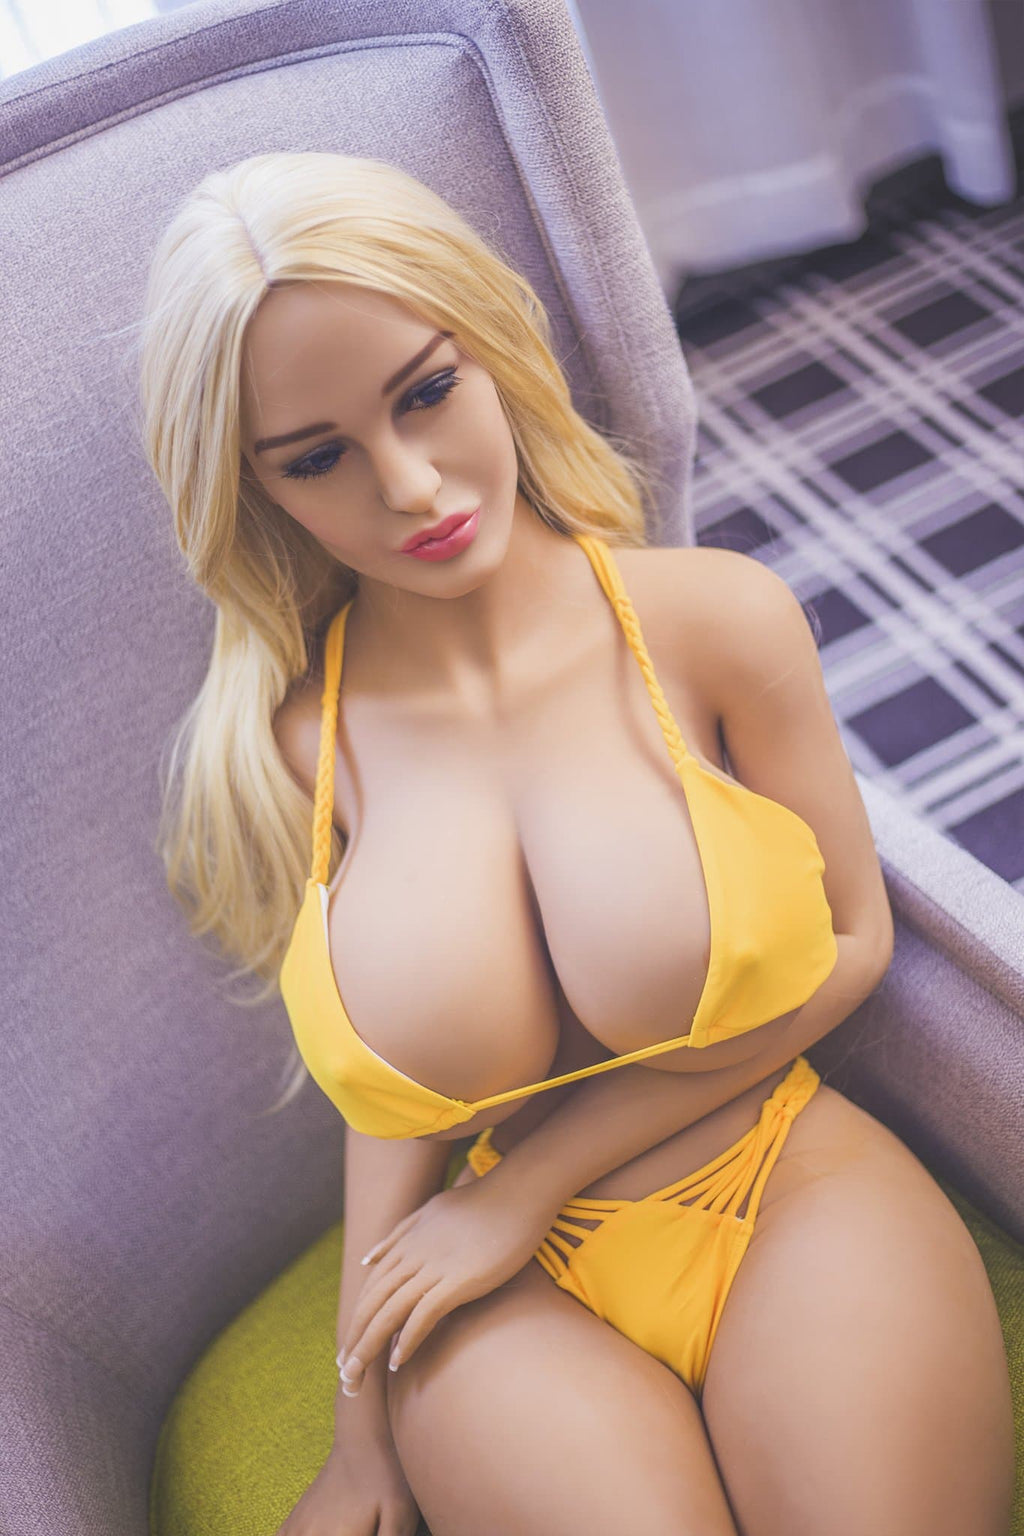 vivica 153cm blonde curvy giant massive tits jy athletic tpe sex doll